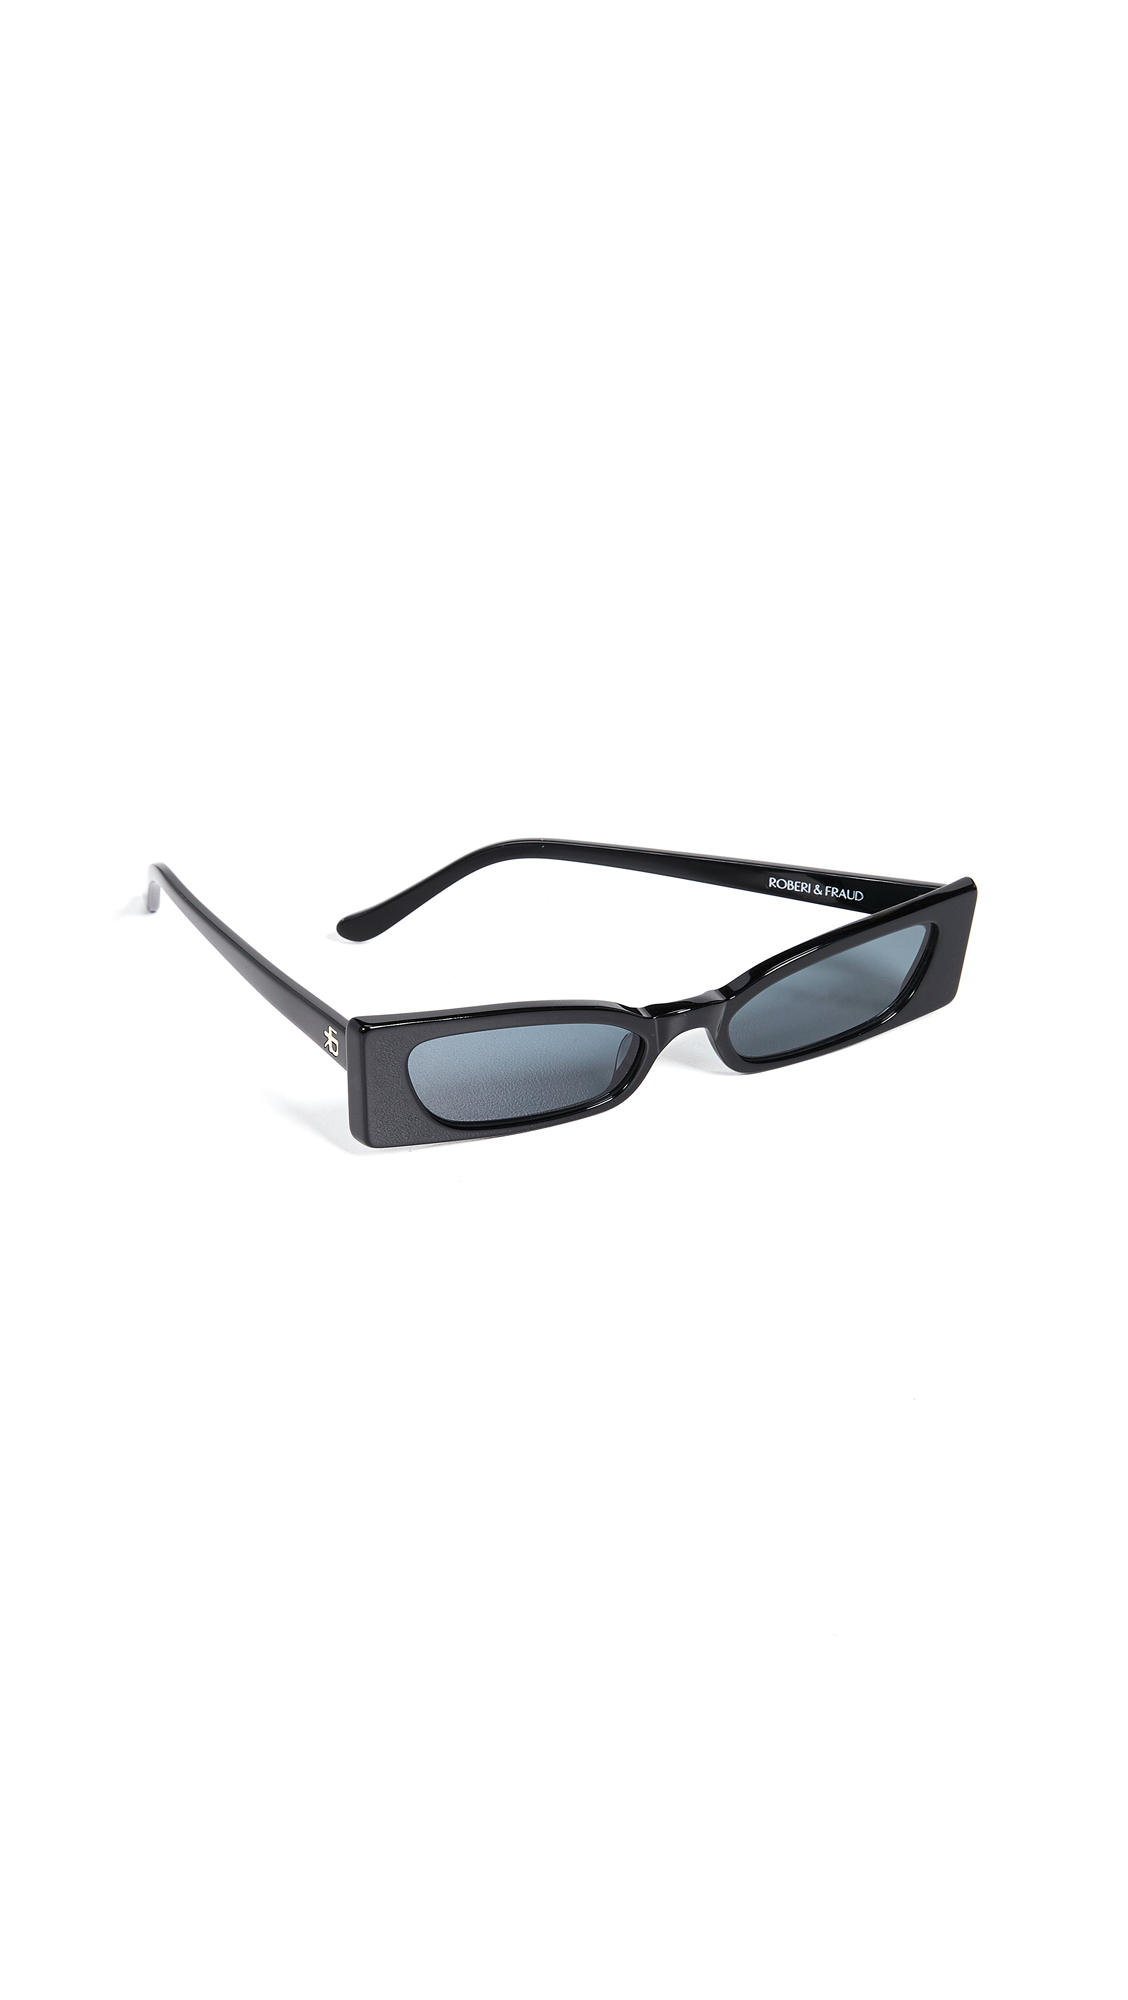 ROBERI & FRAUD Geraldine Sunglasses in Black